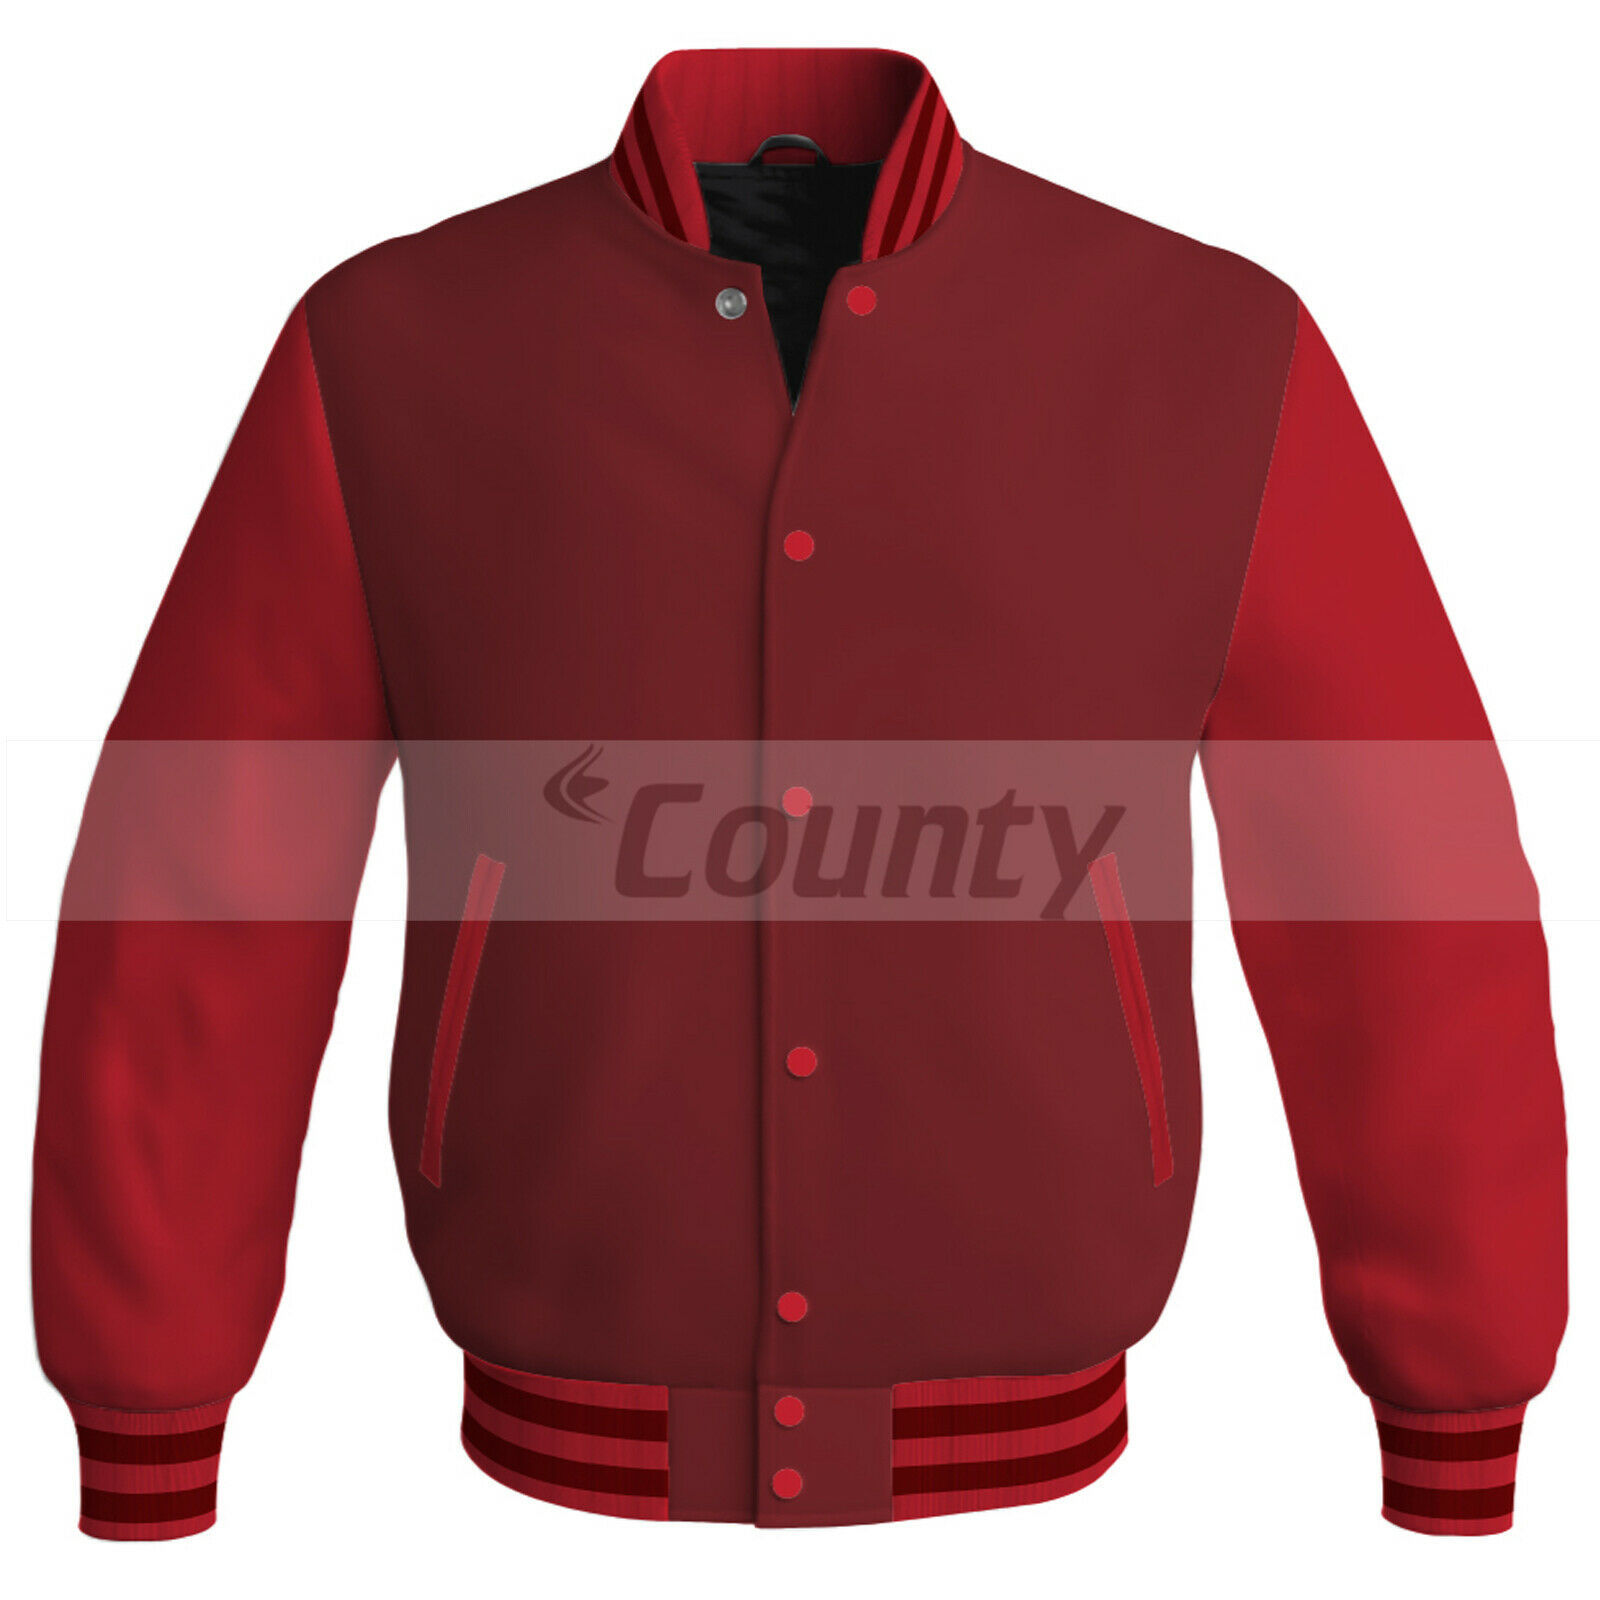 Primary image for Letterman Baseball College Super Bomber Jacket Sports Maroon Red Satin